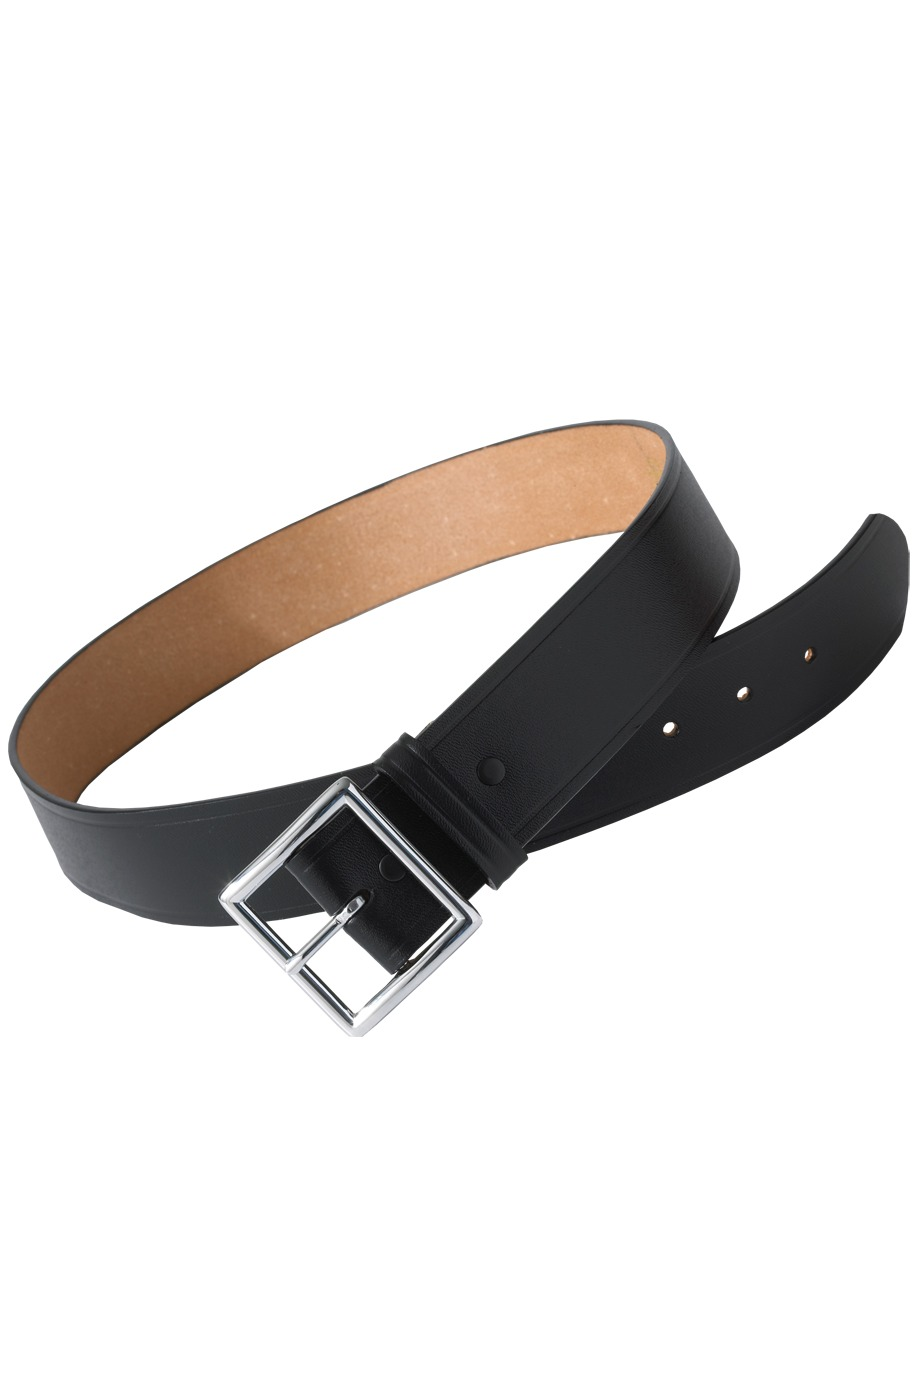 Edwards Garment BC00 - Leather Security Belt